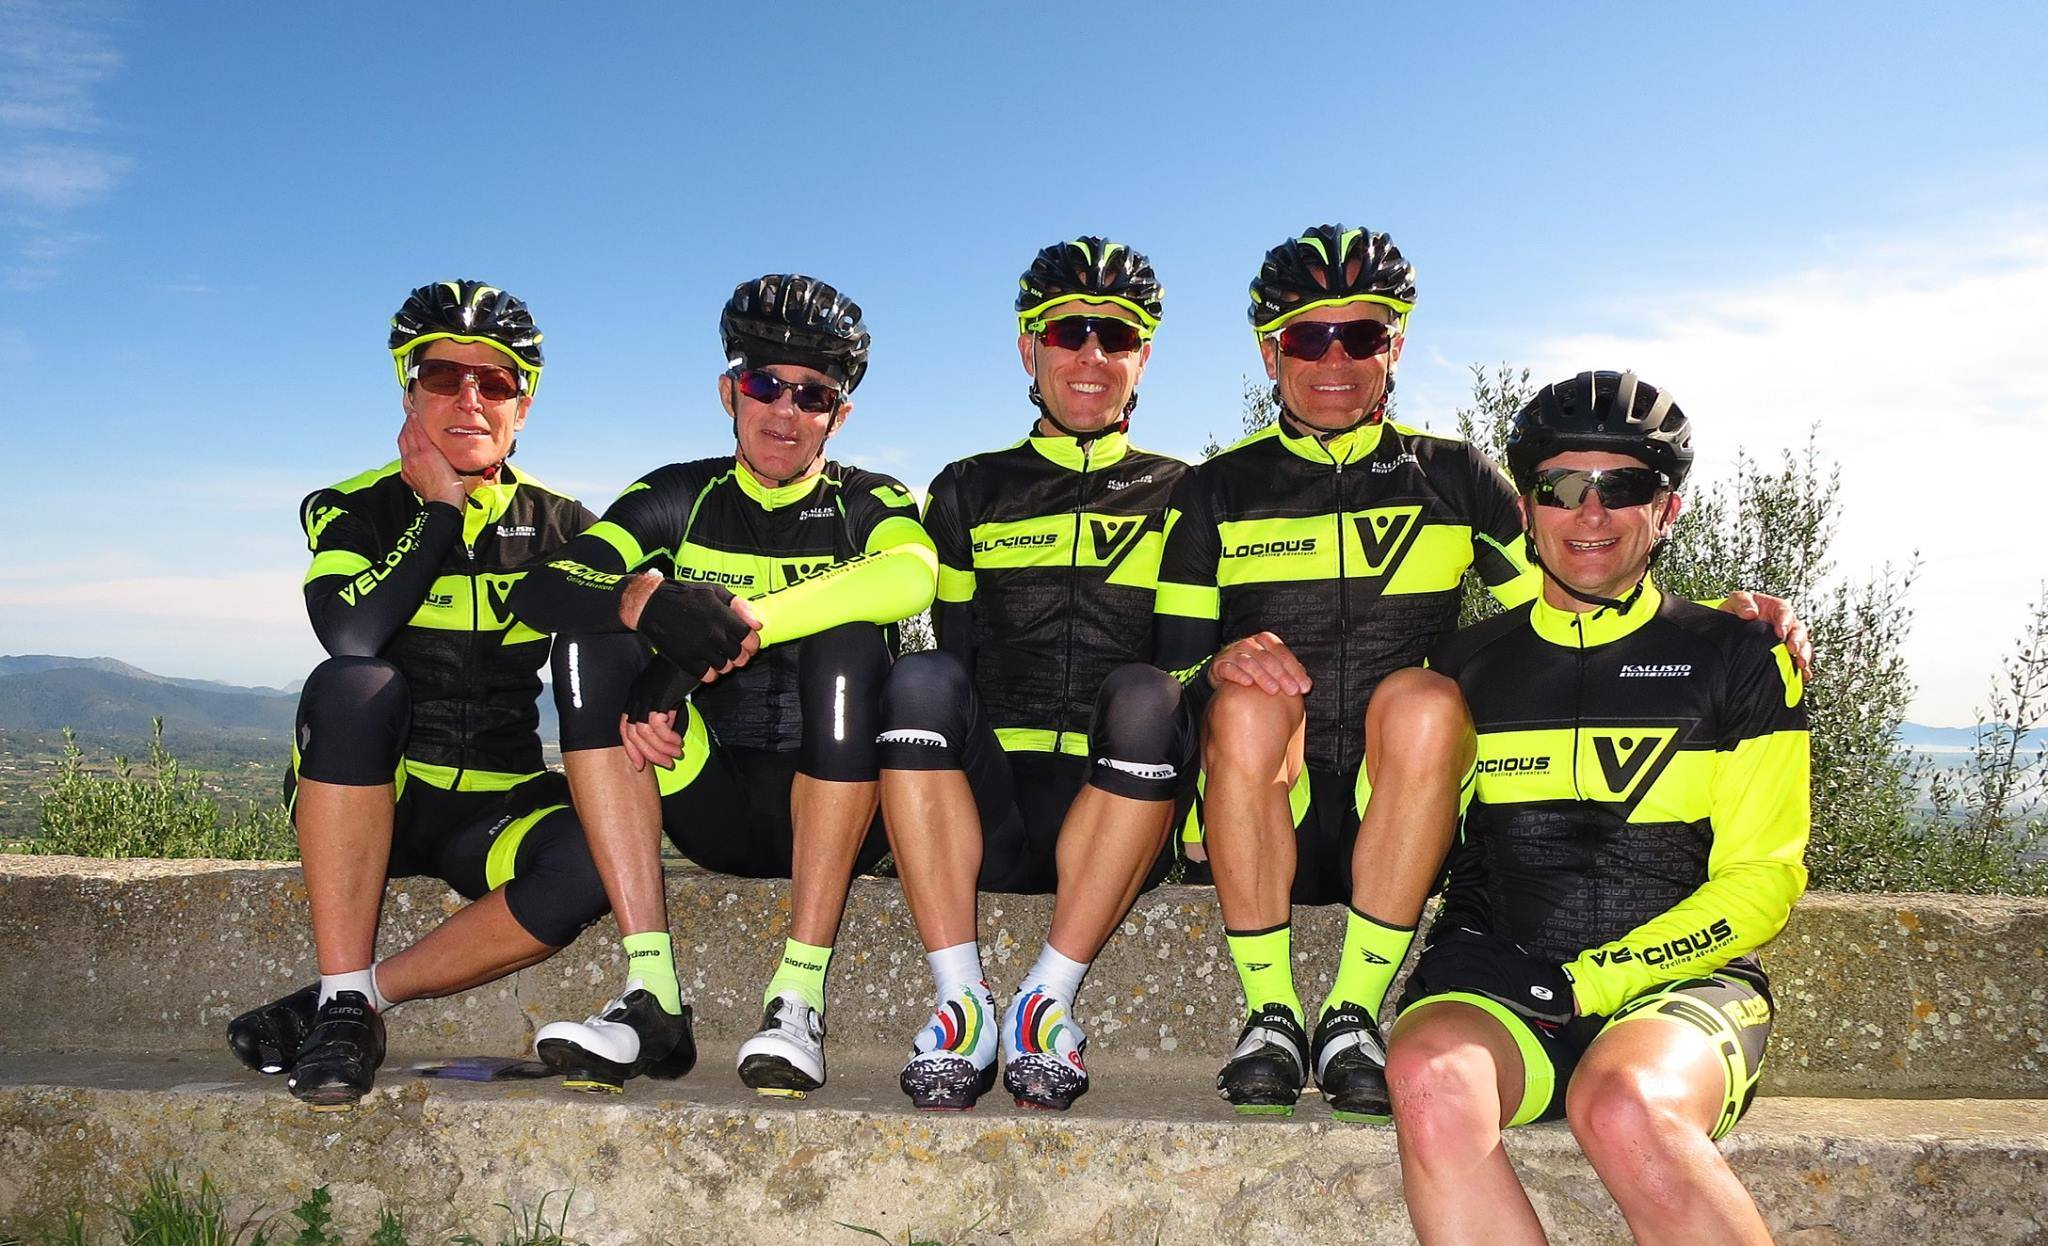 Velocious coaching guide team for cycling camps